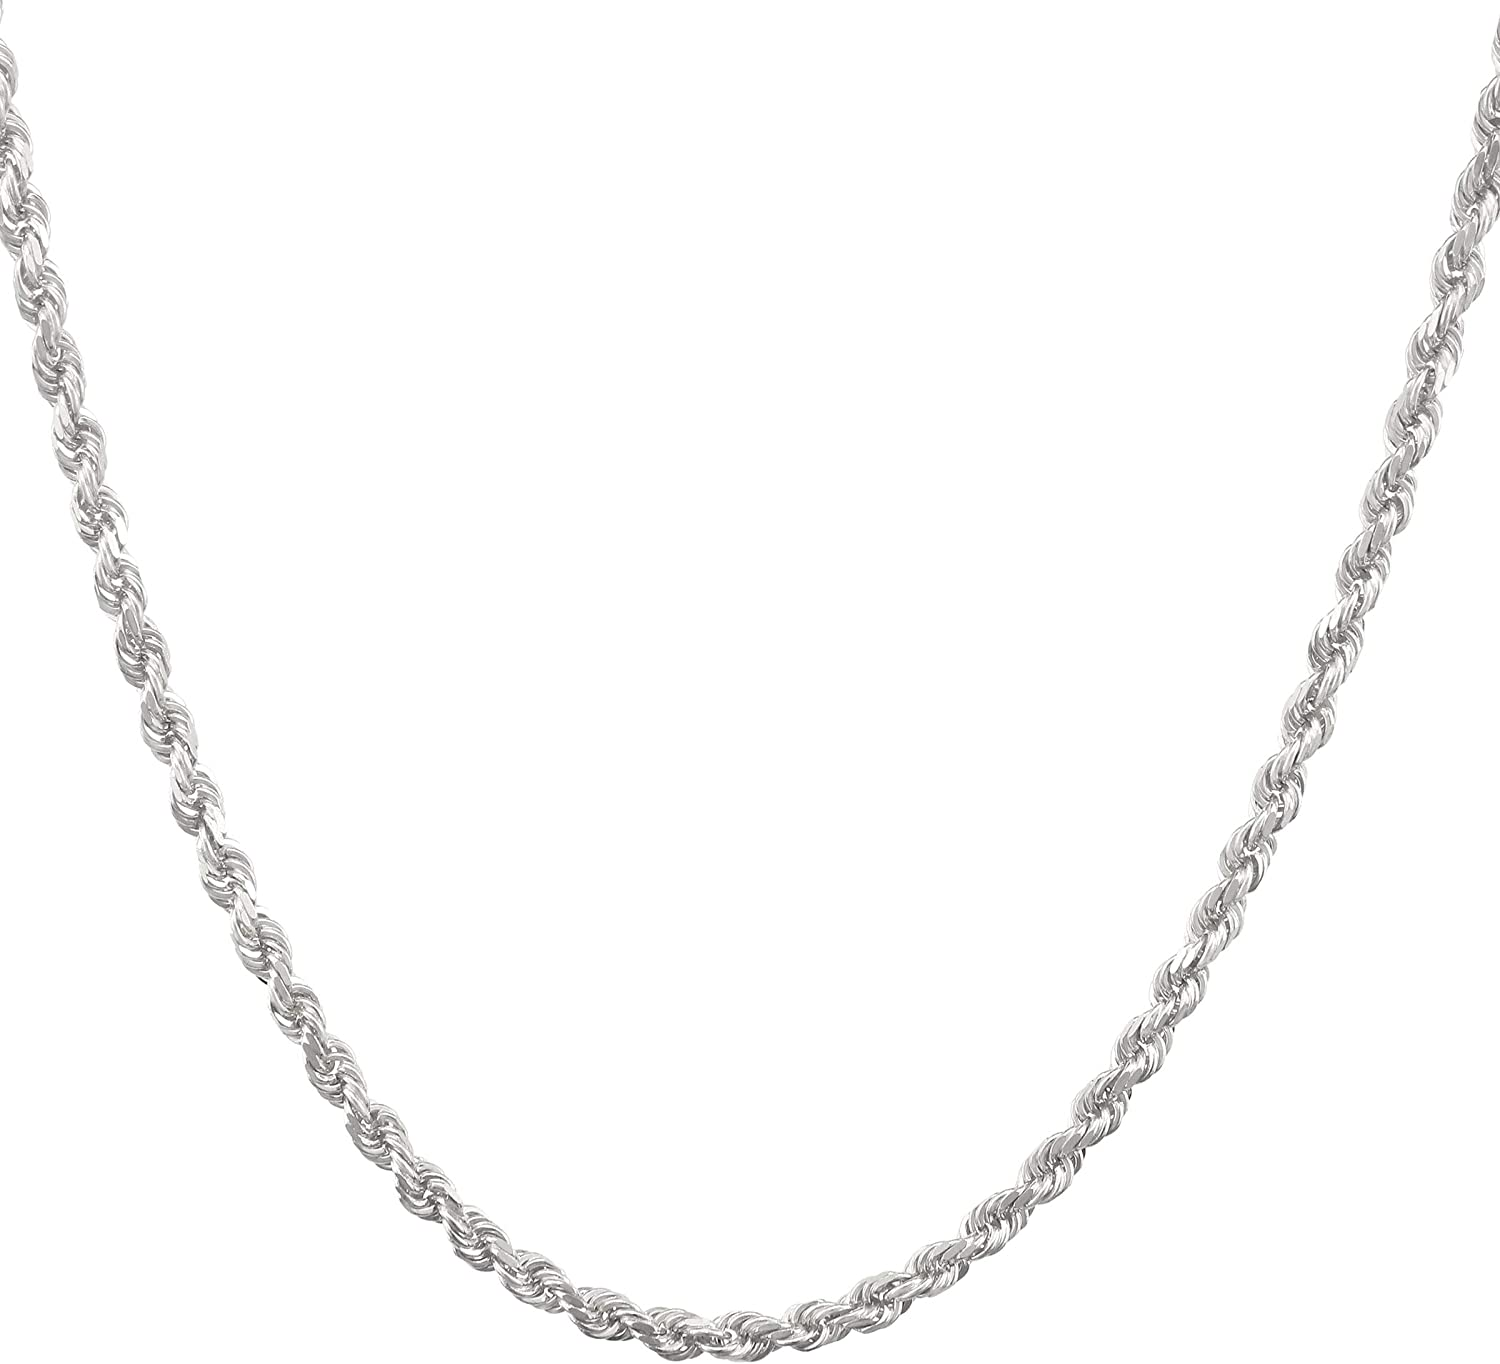 Nuragold 10k White Gold 3mm Solid Rope Chain Diamond Cut Pendant Necklace, Mens Jewelry Lobster Lock 18